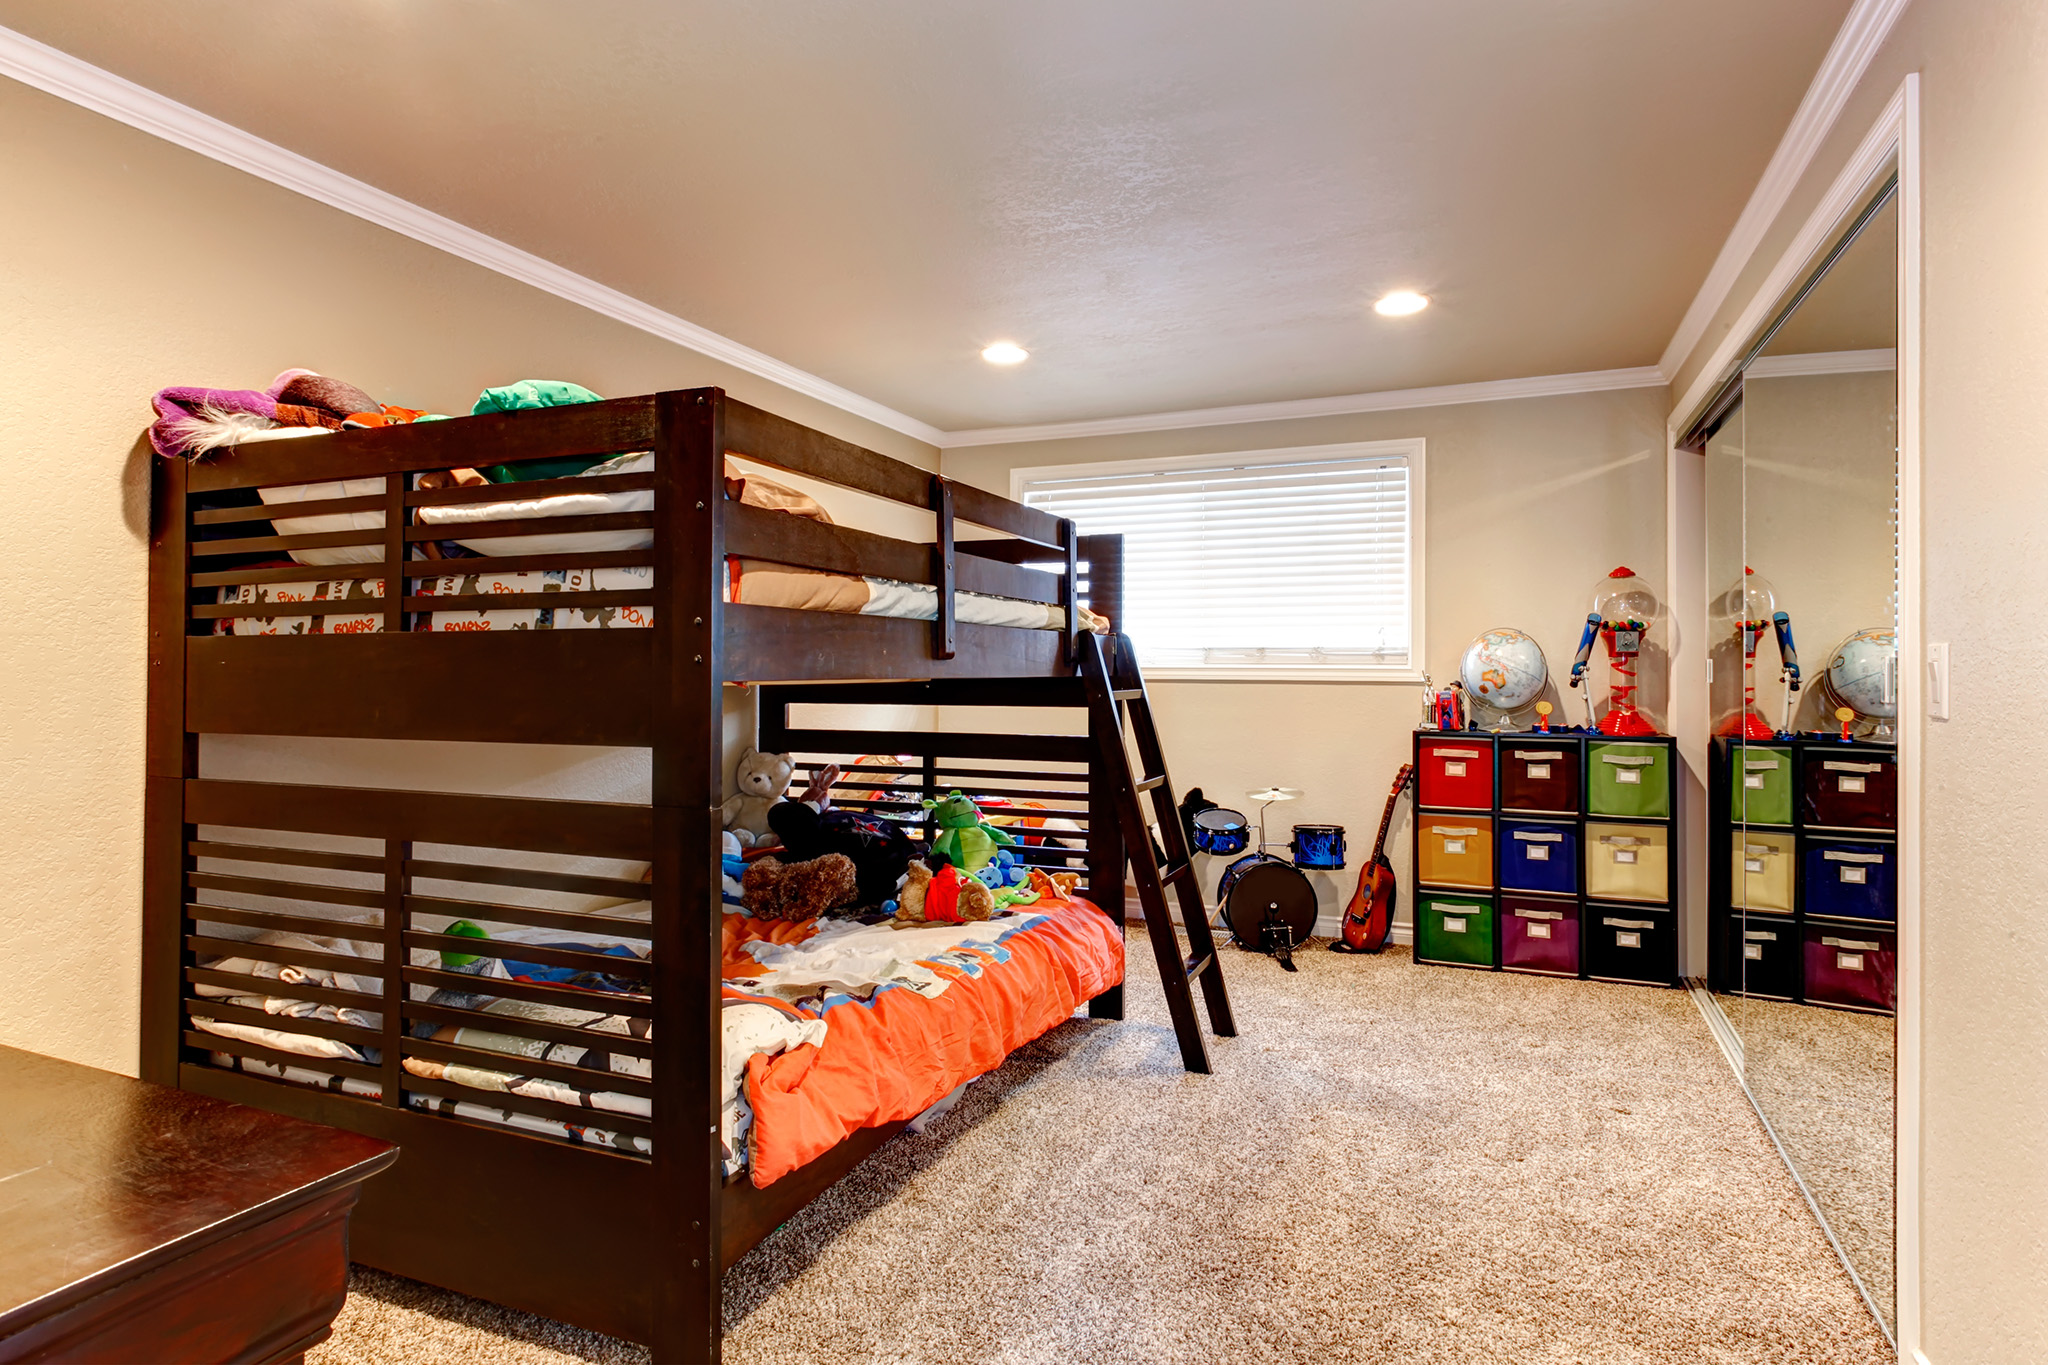 bunk beds, childrens bedroom ideas